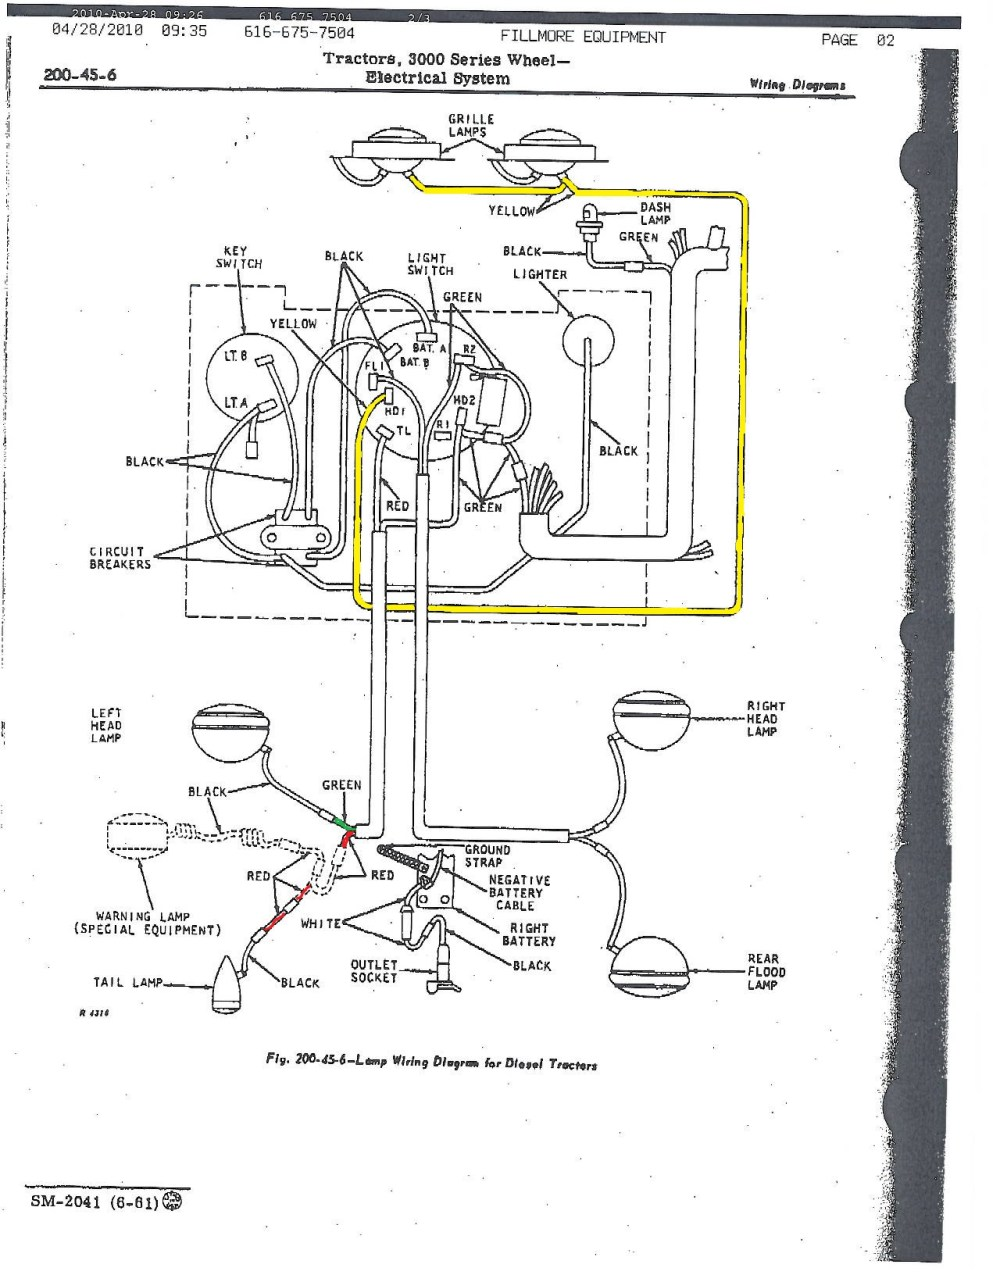 medium resolution of jd starting circuits colored jpg and jd wire paths jpg are perfectly fine diagrams from john 3010